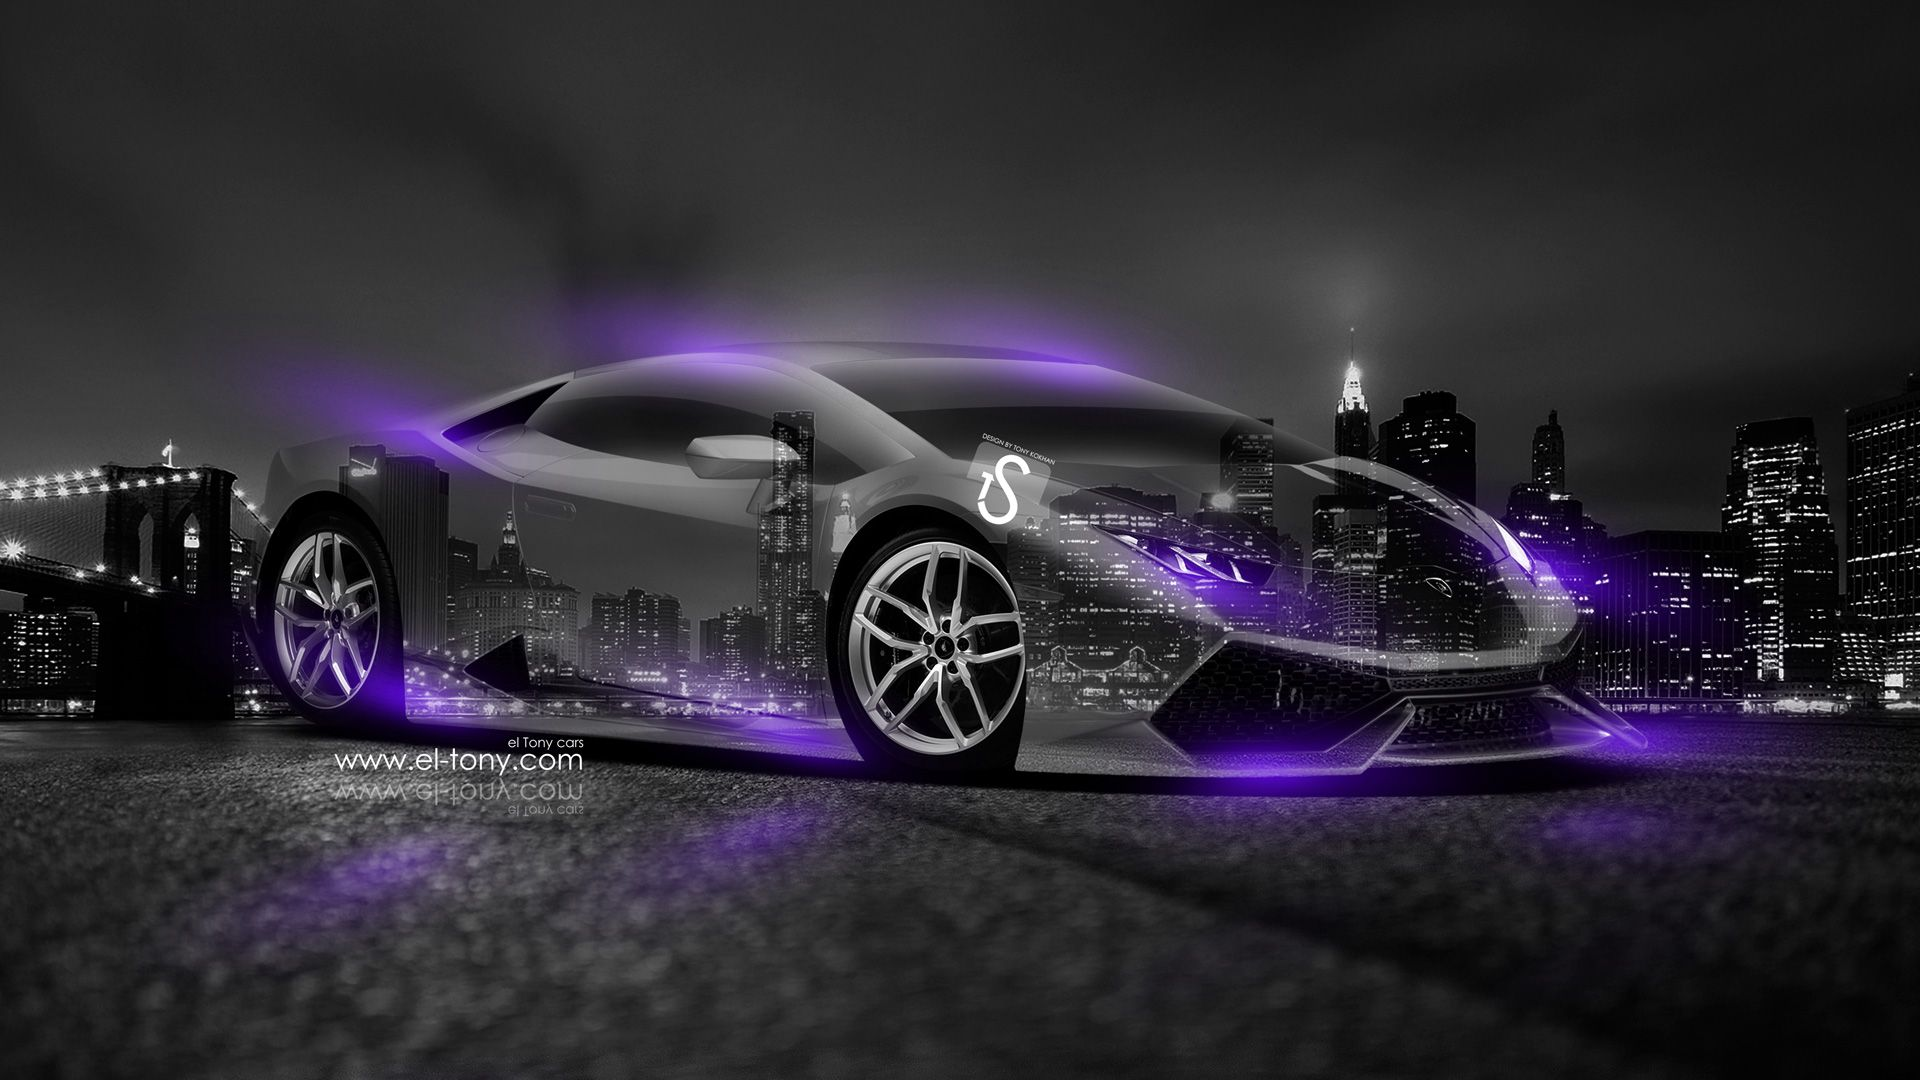 Lamborghini Gallardo Back Abstract Car Design By Tony Kokhan Wallpapers) U2013  HD Desktop Wallpapers